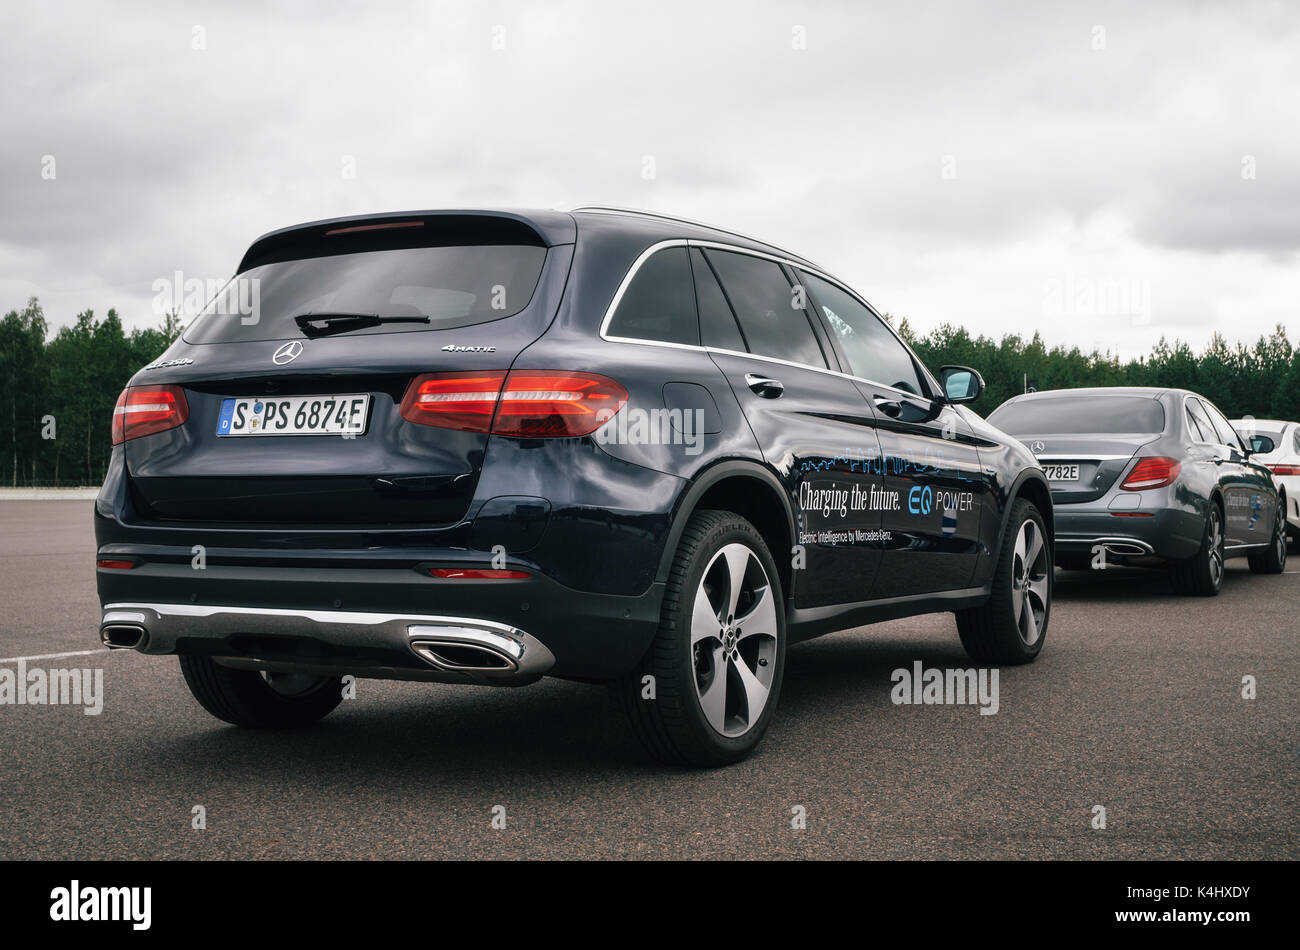 minsk belarus august 26 2017 rear view of mercedes benz glc 350 stock photo royalty free. Black Bedroom Furniture Sets. Home Design Ideas